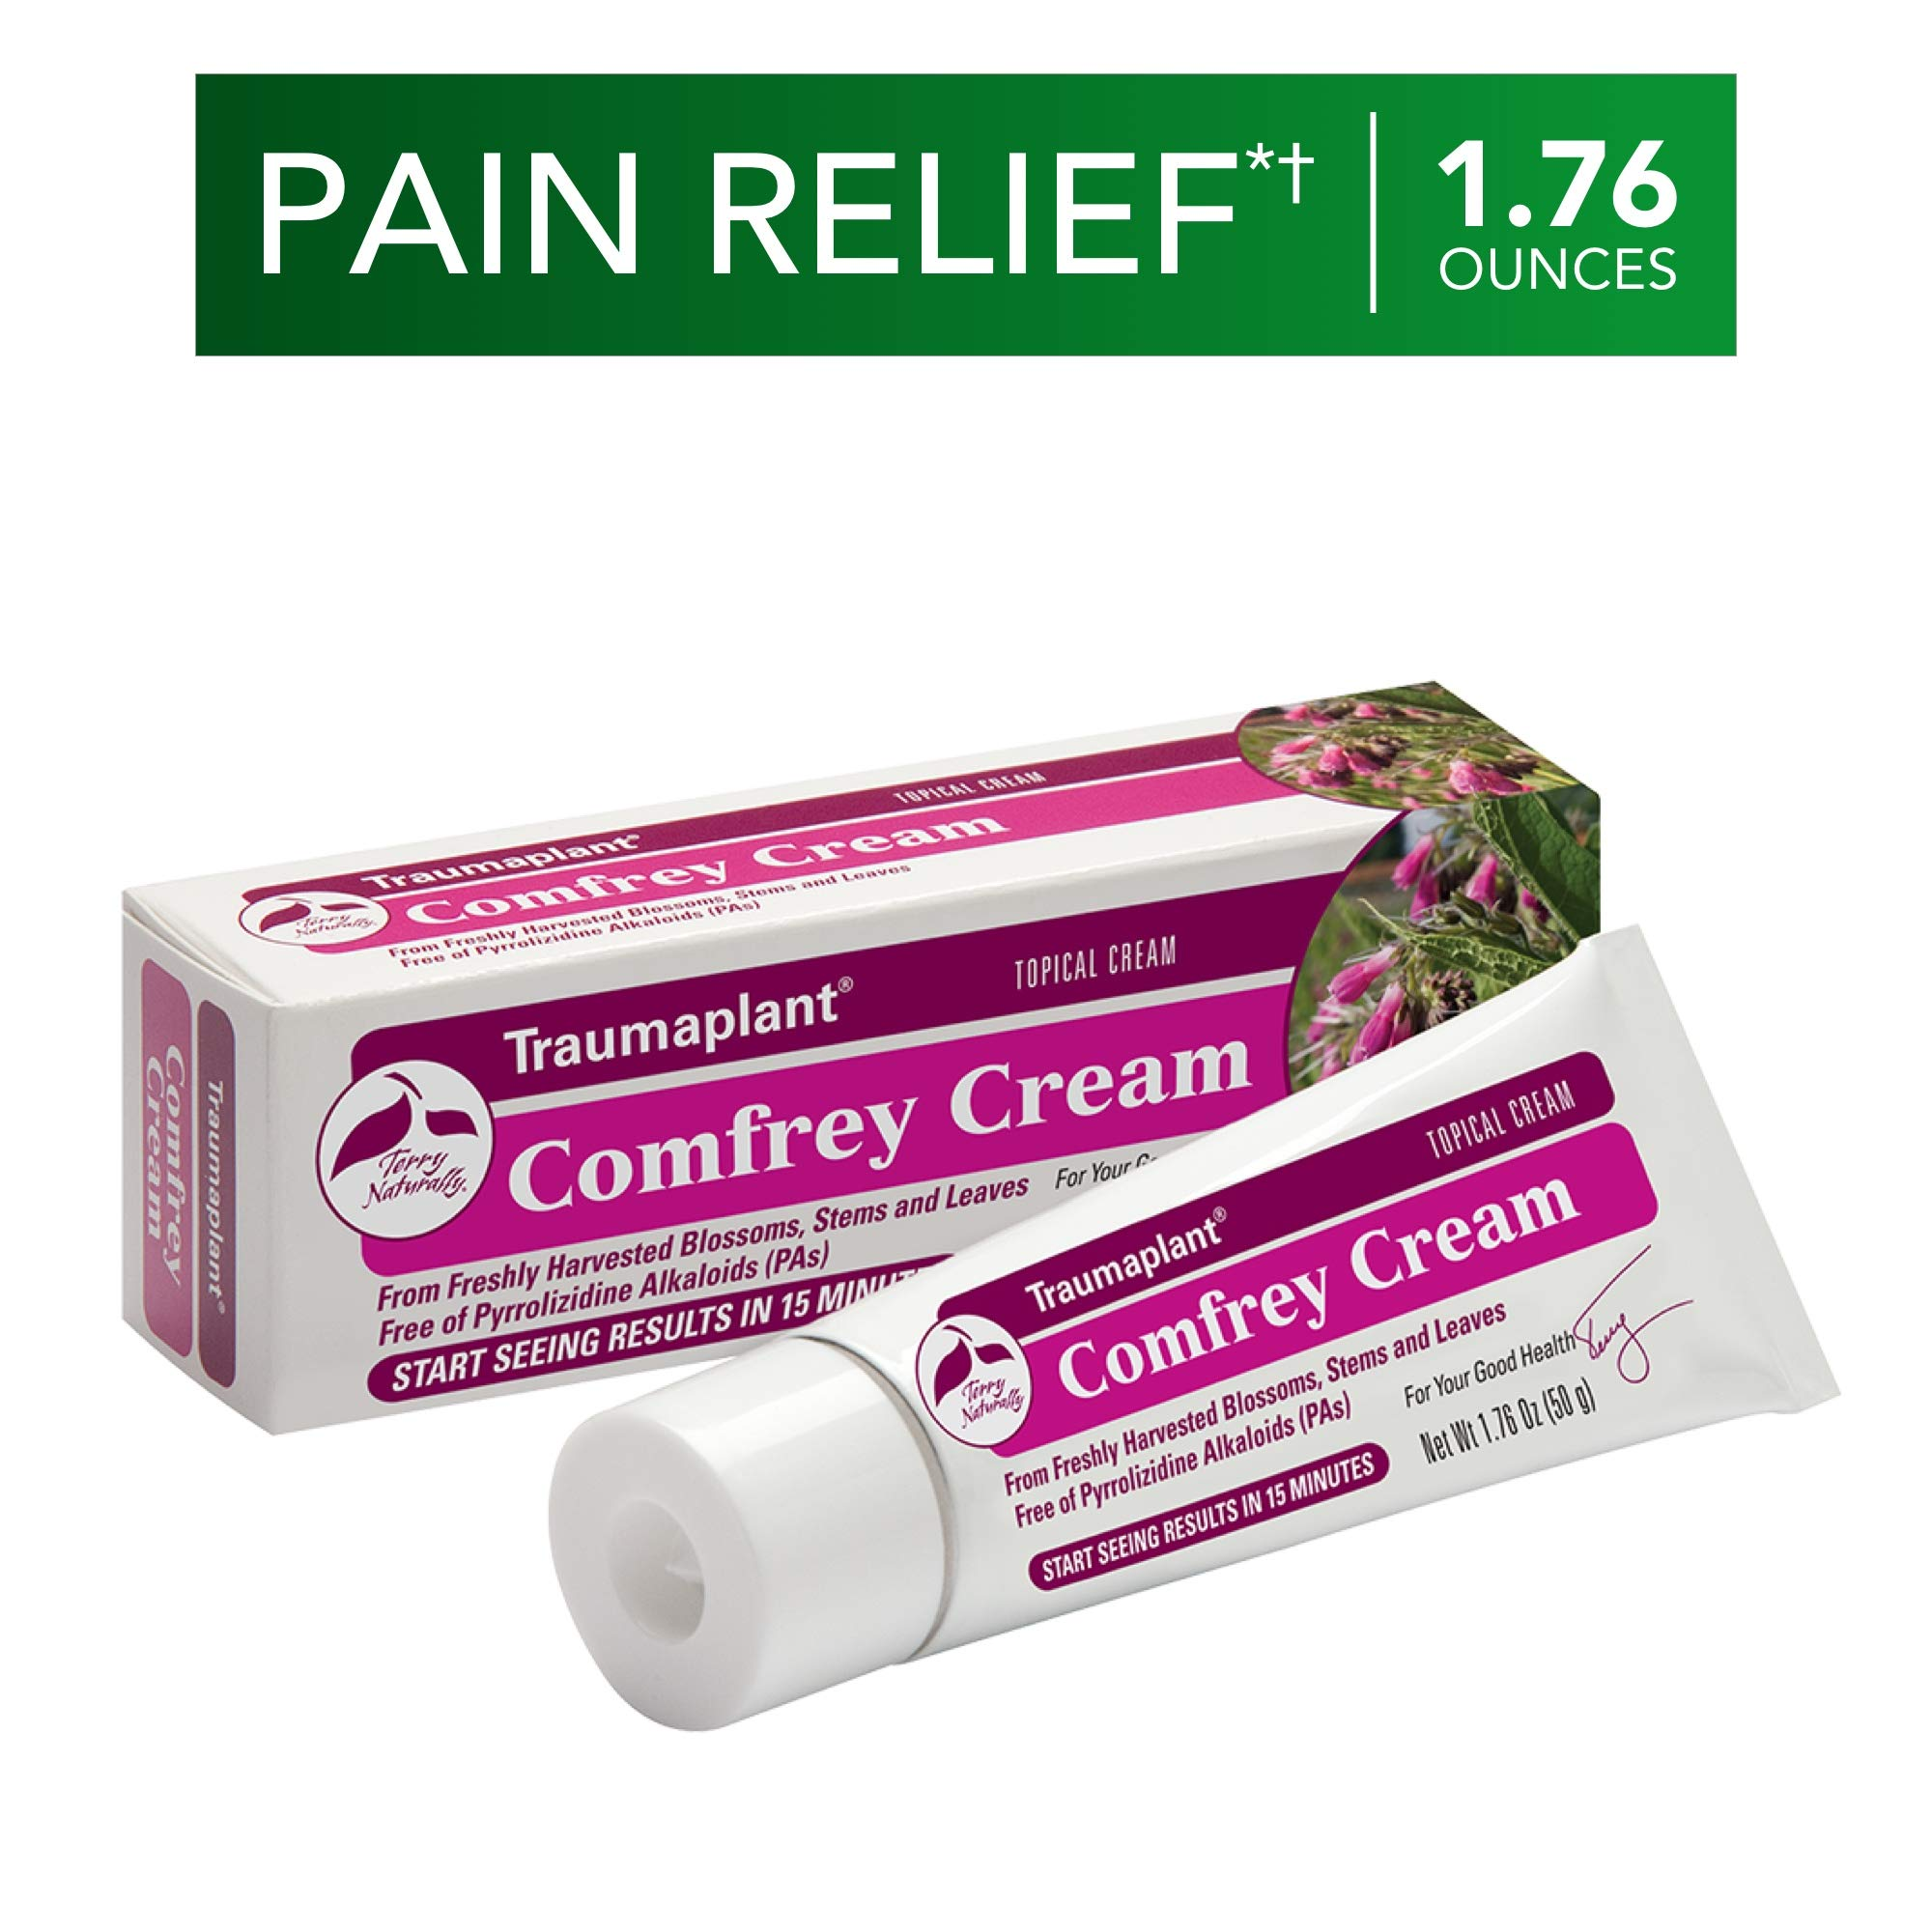 Terry Naturally Traumaplant Comfrey Cream - 1.76 oz (50 g) - Non-Staining Topical Botanical Pain Relief, Free of Toxic Pyrrolizidine Alkaloids (PAs) & Parabens - for External Use Only